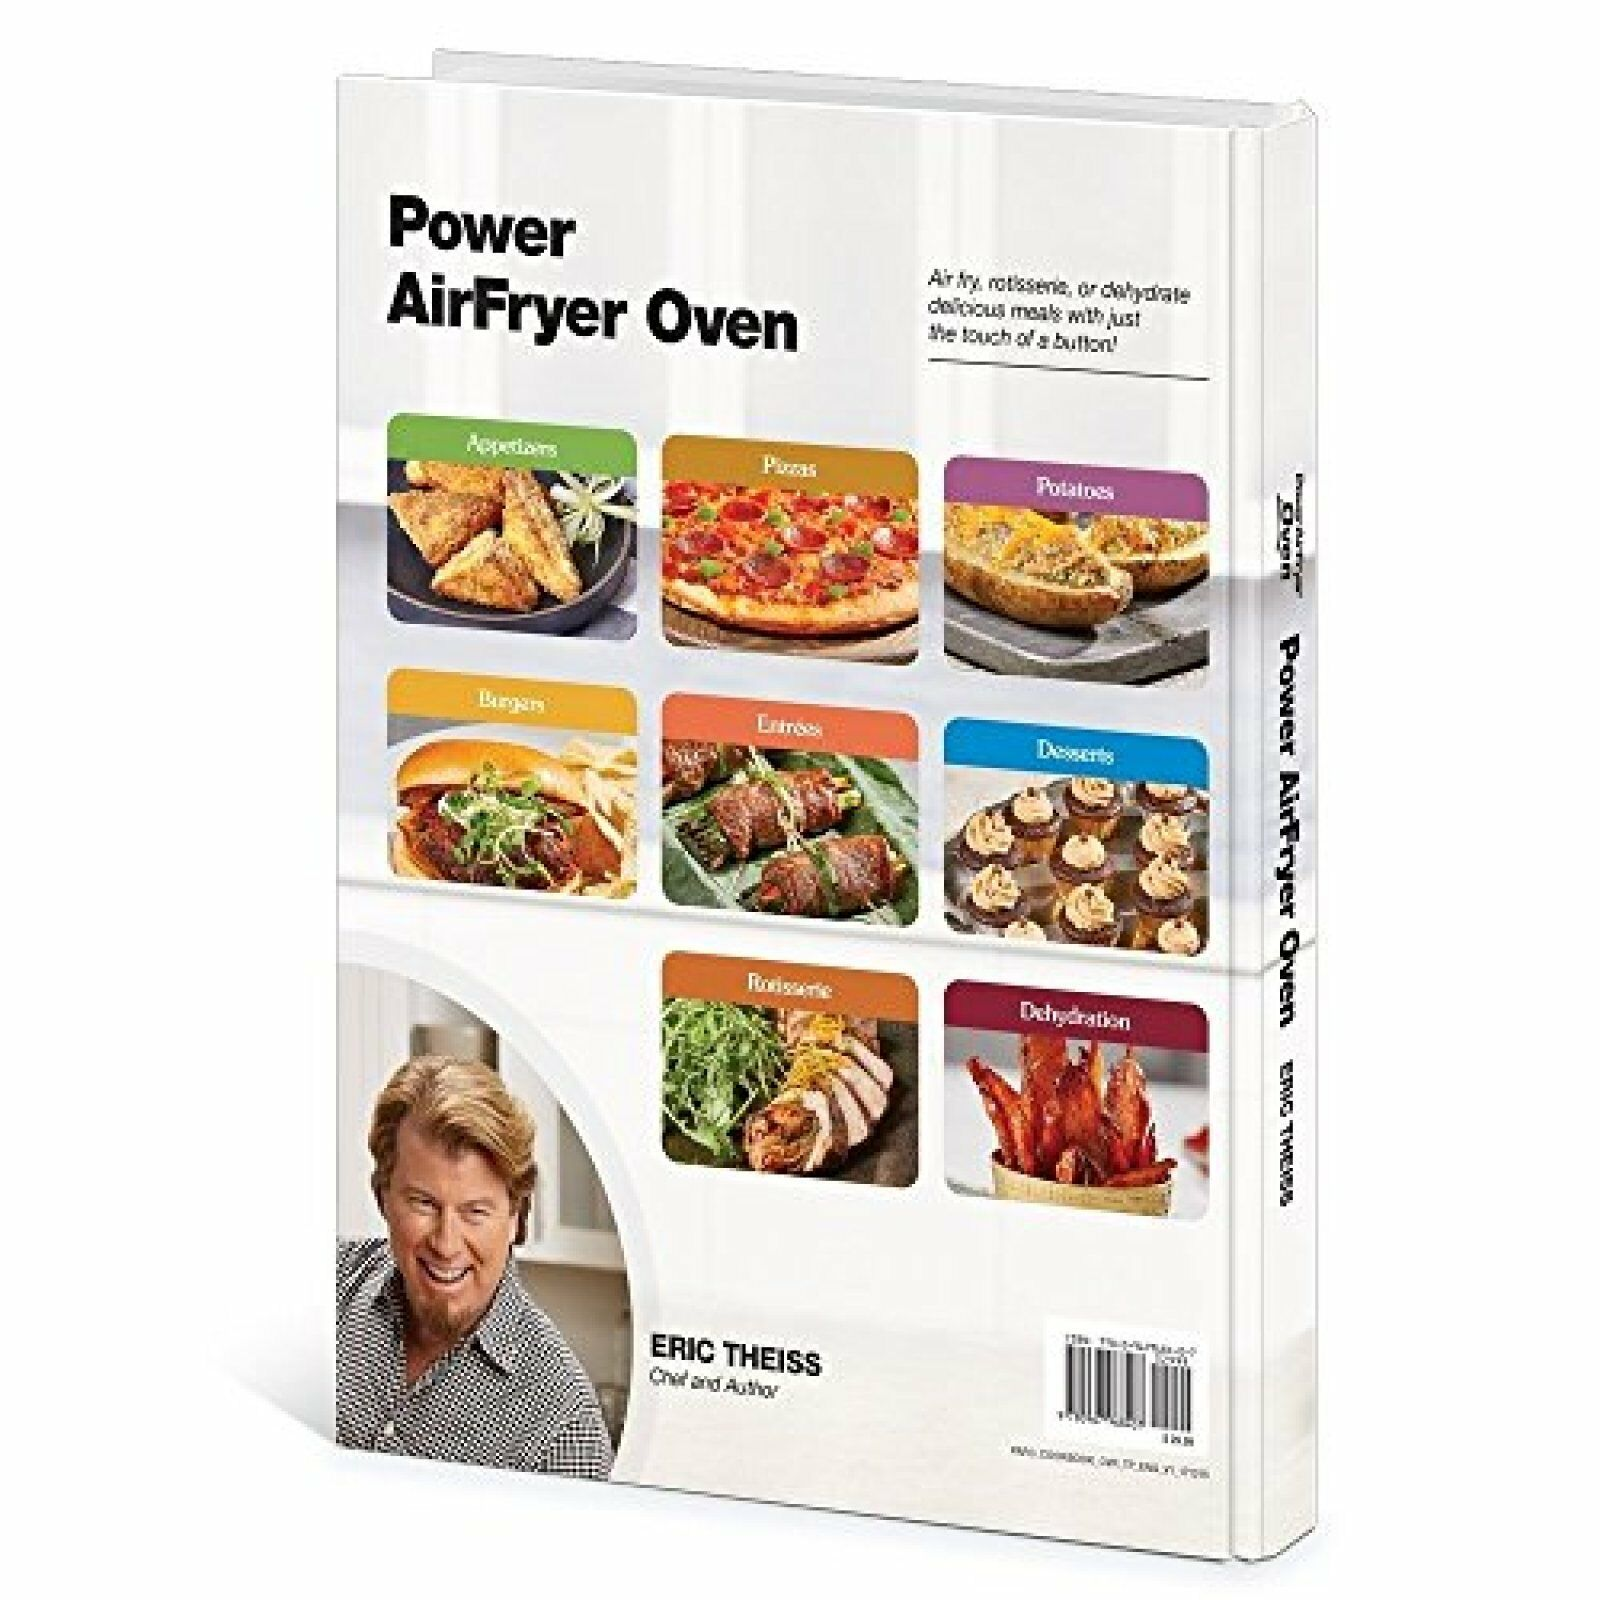 Power Air Fryer Oven Cookbook Hardcover By Eric Theiss 124 E